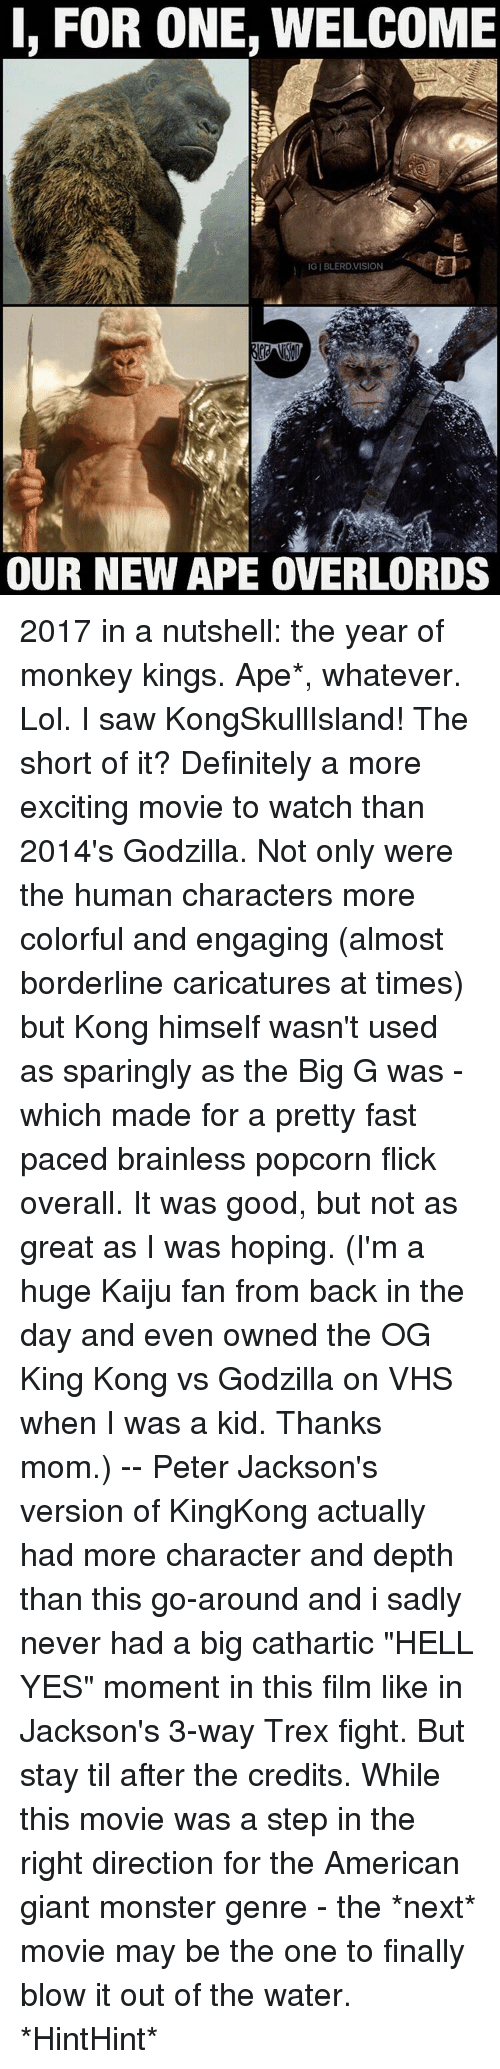 "trex: I, FOR ONE, WELCOME  IGIBLERDVISION  OUR NEW APE OVERLORDS 2017 in a nutshell: the year of monkey kings. Ape*, whatever. Lol. I saw KongSkullIsland! The short of it? Definitely a more exciting movie to watch than 2014's Godzilla. Not only were the human characters more colorful and engaging (almost borderline caricatures at times) but Kong himself wasn't used as sparingly as the Big G was - which made for a pretty fast paced brainless popcorn flick overall. It was good, but not as great as I was hoping. (I'm a huge Kaiju fan from back in the day and even owned the OG King Kong vs Godzilla on VHS when I was a kid. Thanks mom.) -- Peter Jackson's version of KingKong actually had more character and depth than this go-around and i sadly never had a big cathartic ""HELL YES"" moment in this film like in Jackson's 3-way Trex fight. But stay til after the credits. While this movie was a step in the right direction for the American giant monster genre - the *next* movie may be the one to finally blow it out of the water. *HintHint*"